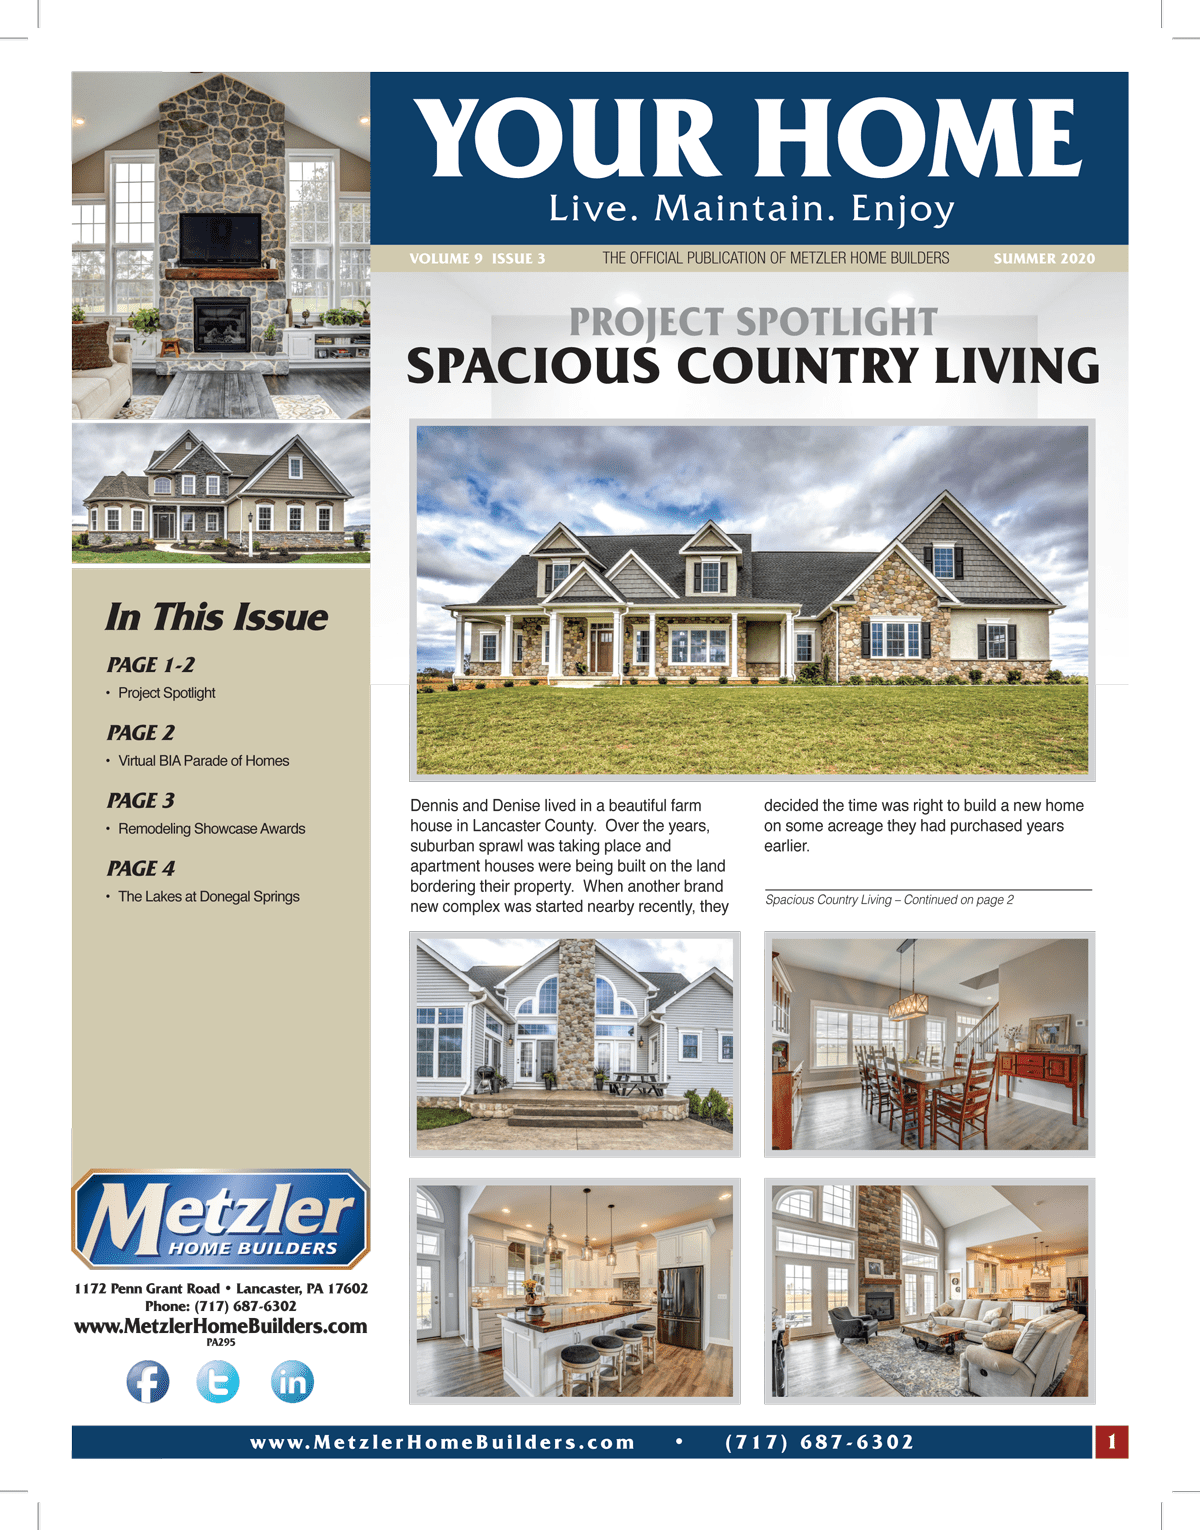 Metzler 'Your Home' Newsletter PDF cover for Volume 9 Issue 3